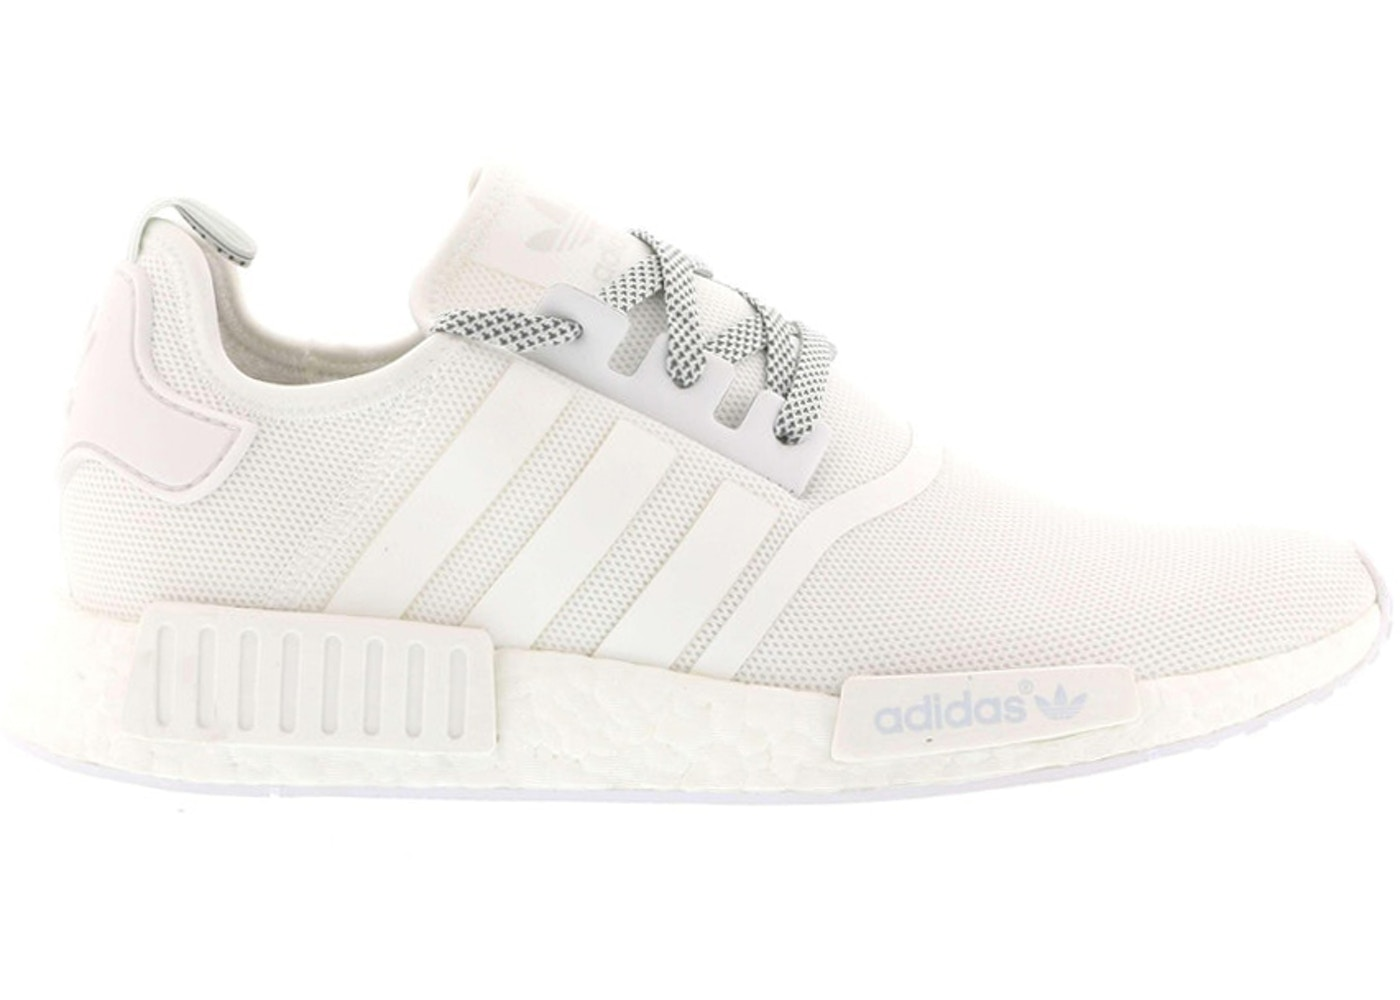 Adidas Nmd R1 White Reflective S31506